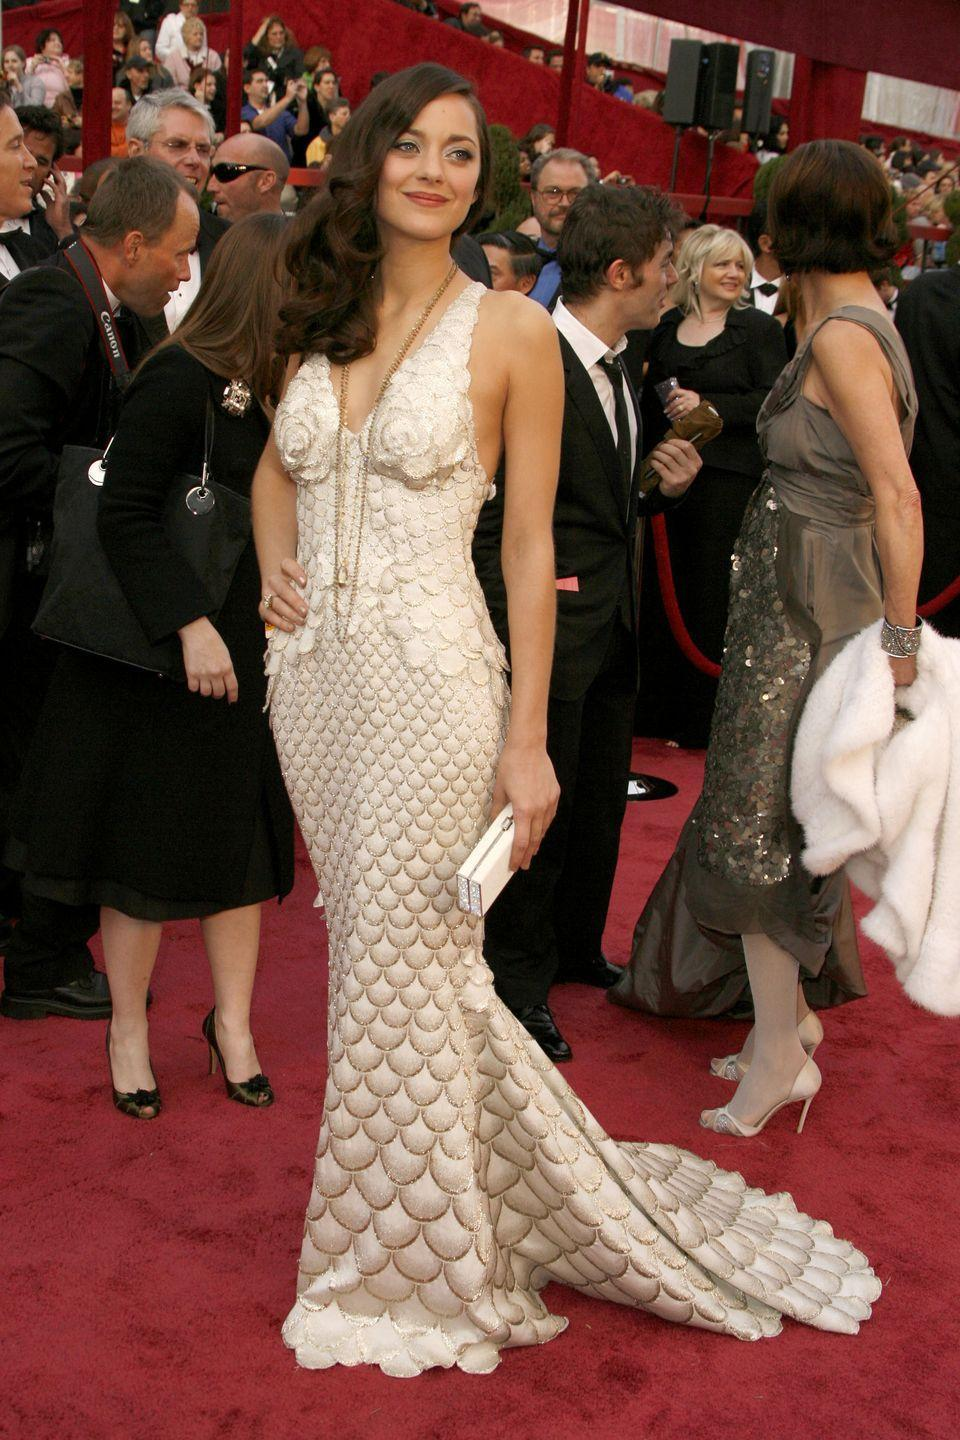 <p>Marion wore a mermaid dress to the red carpet in the most literal sense. She looked radiant in this Jean Paul Gaultier gown that featured a golden scale-like pattern. She grew to international fame that year after her breakout role as Édith Piaf in <em>La Vie en Rose</em>, which earned her the Best Actress award.</p>